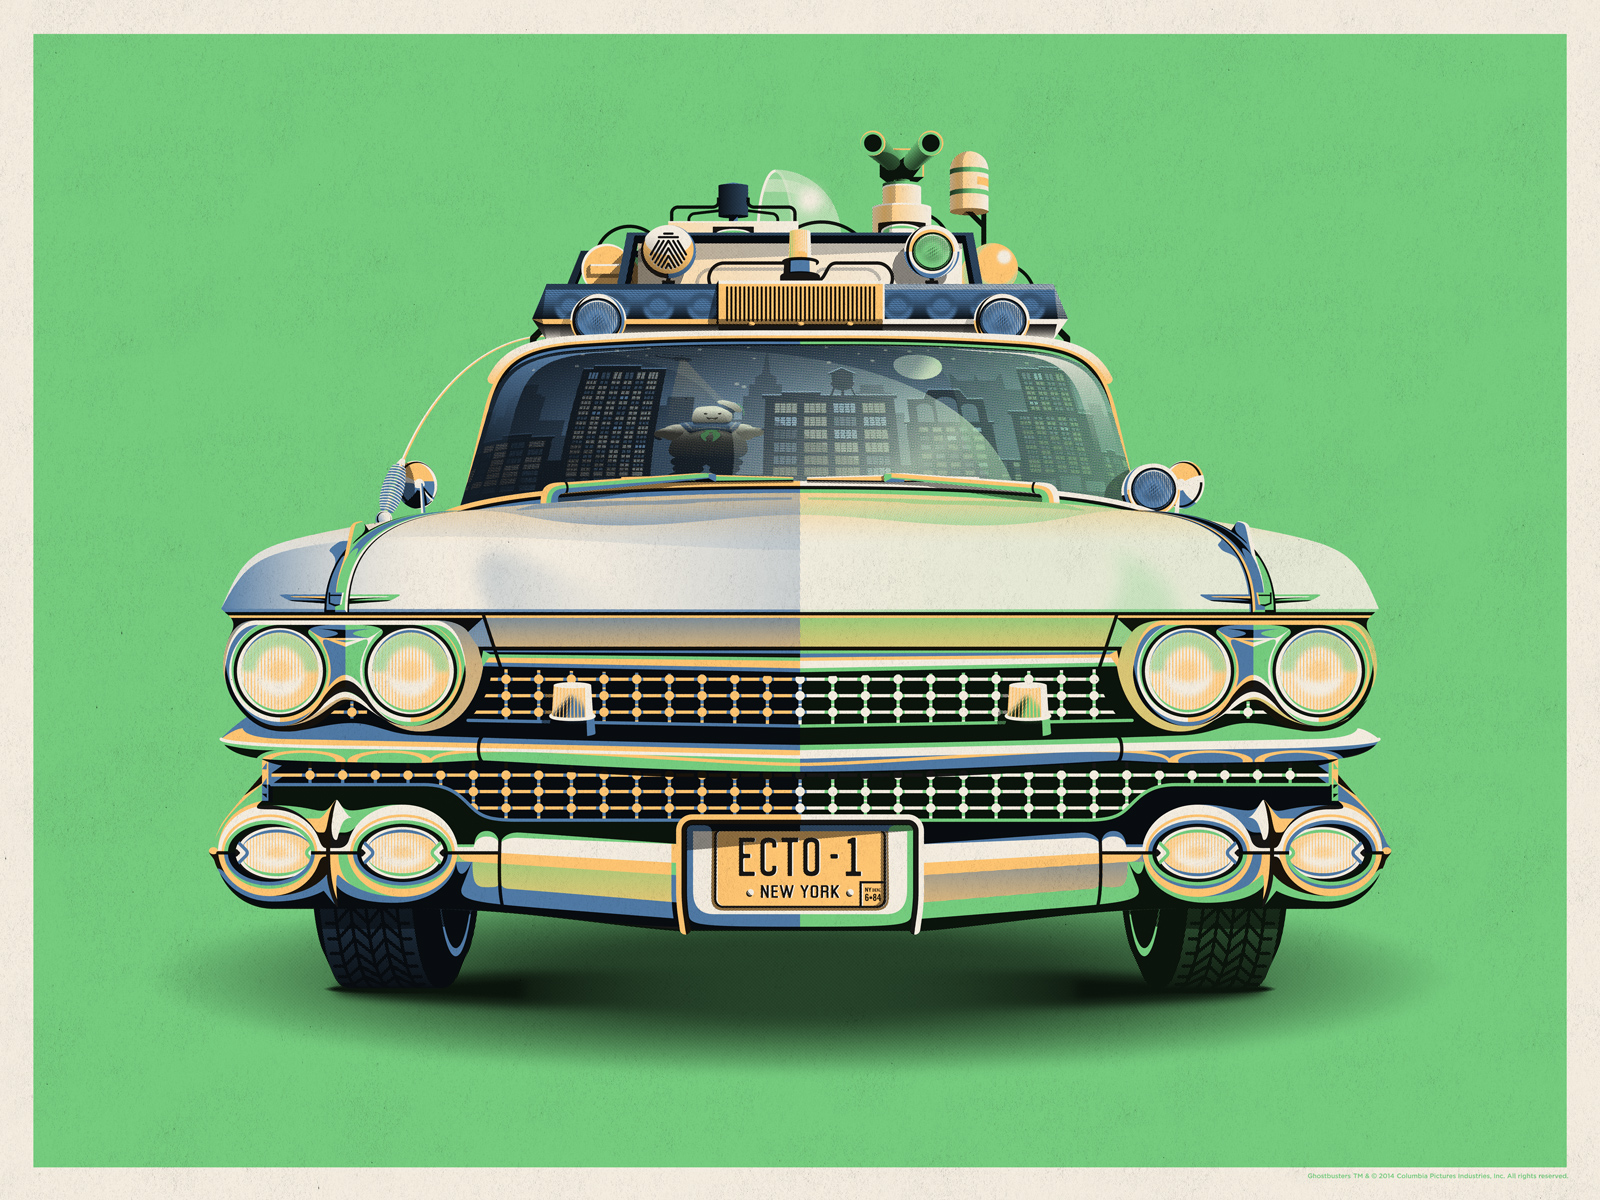 Ghostbusters 30th Anniversary Ecto-1 // Art Print by DKNG